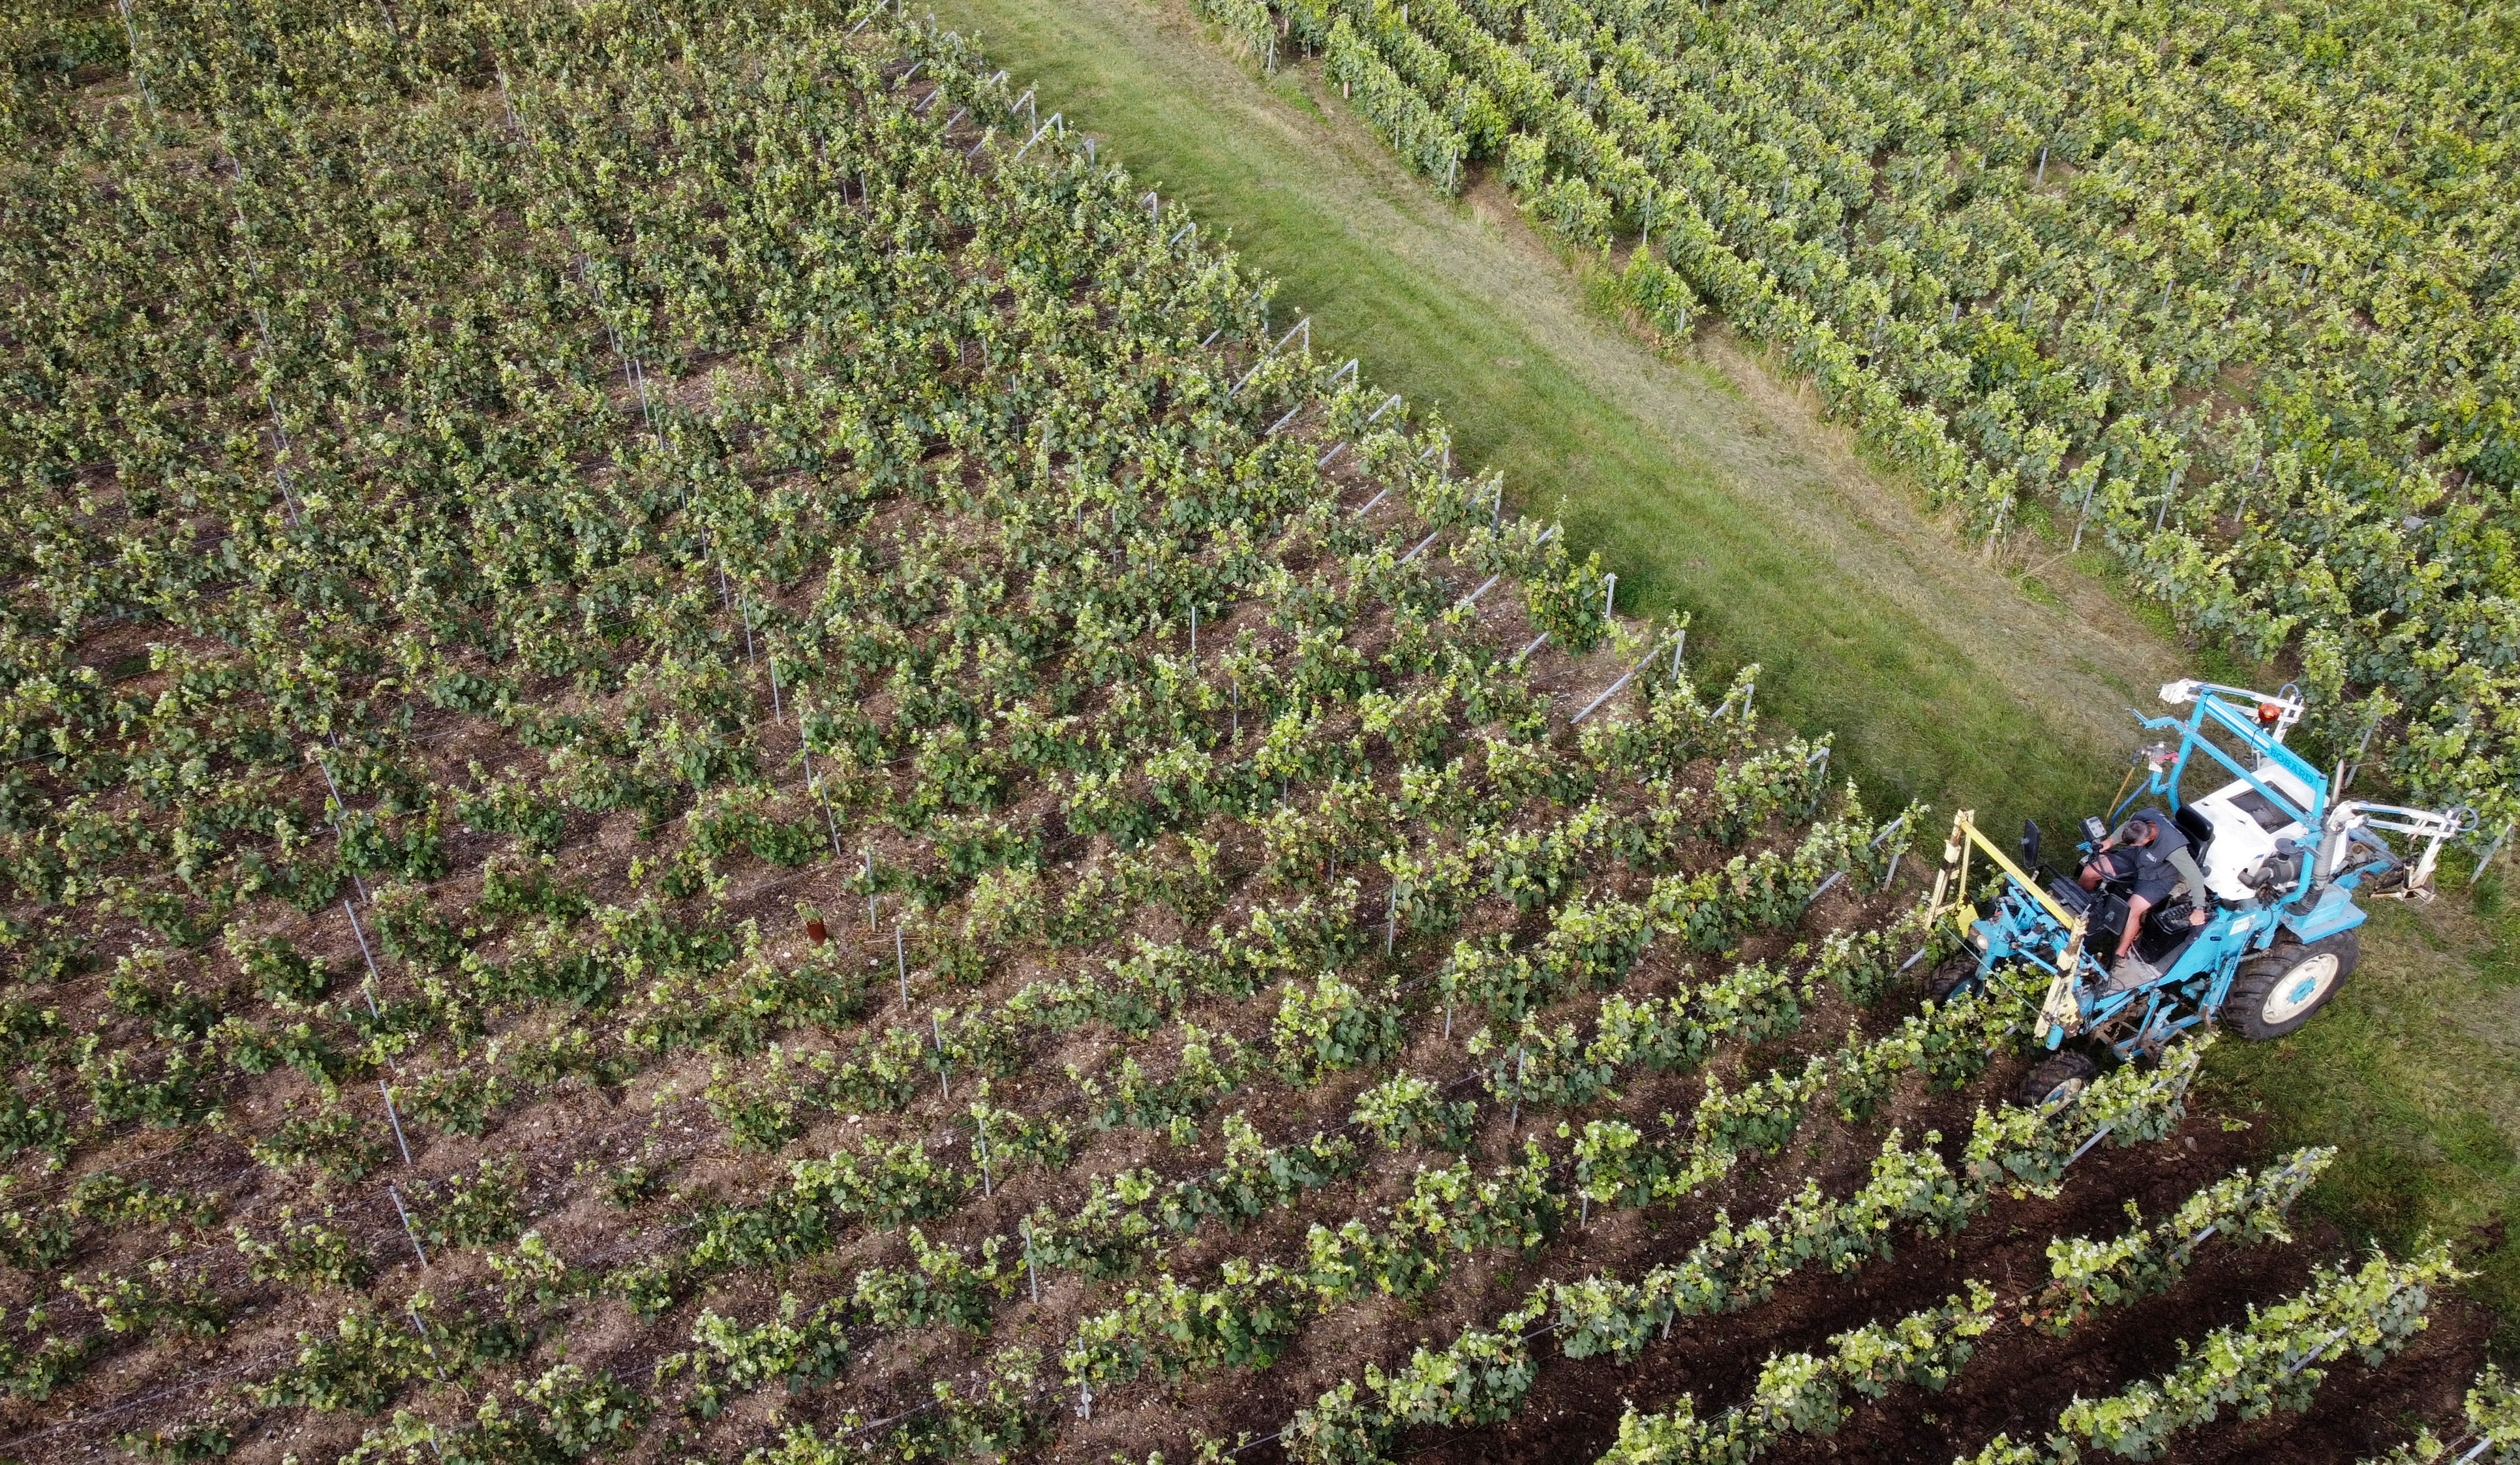 Champagne vineyards that suffered damages by mildew fungus due to heavy rainfall earlier this month are seen in Le Breuil, France July 30, 2021. Picture taken with a drone. REUTERS/Yiming Woo/File Photo